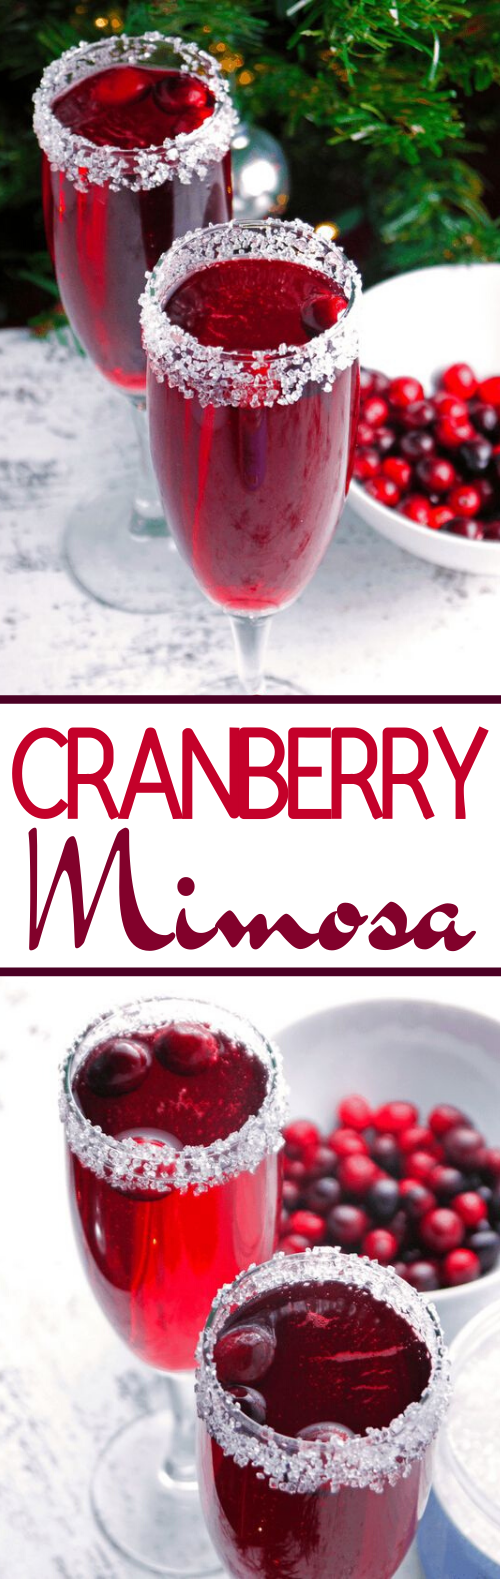 Cranberry Mimosa #drinks #alcohol #brunch #cocktails #christmas